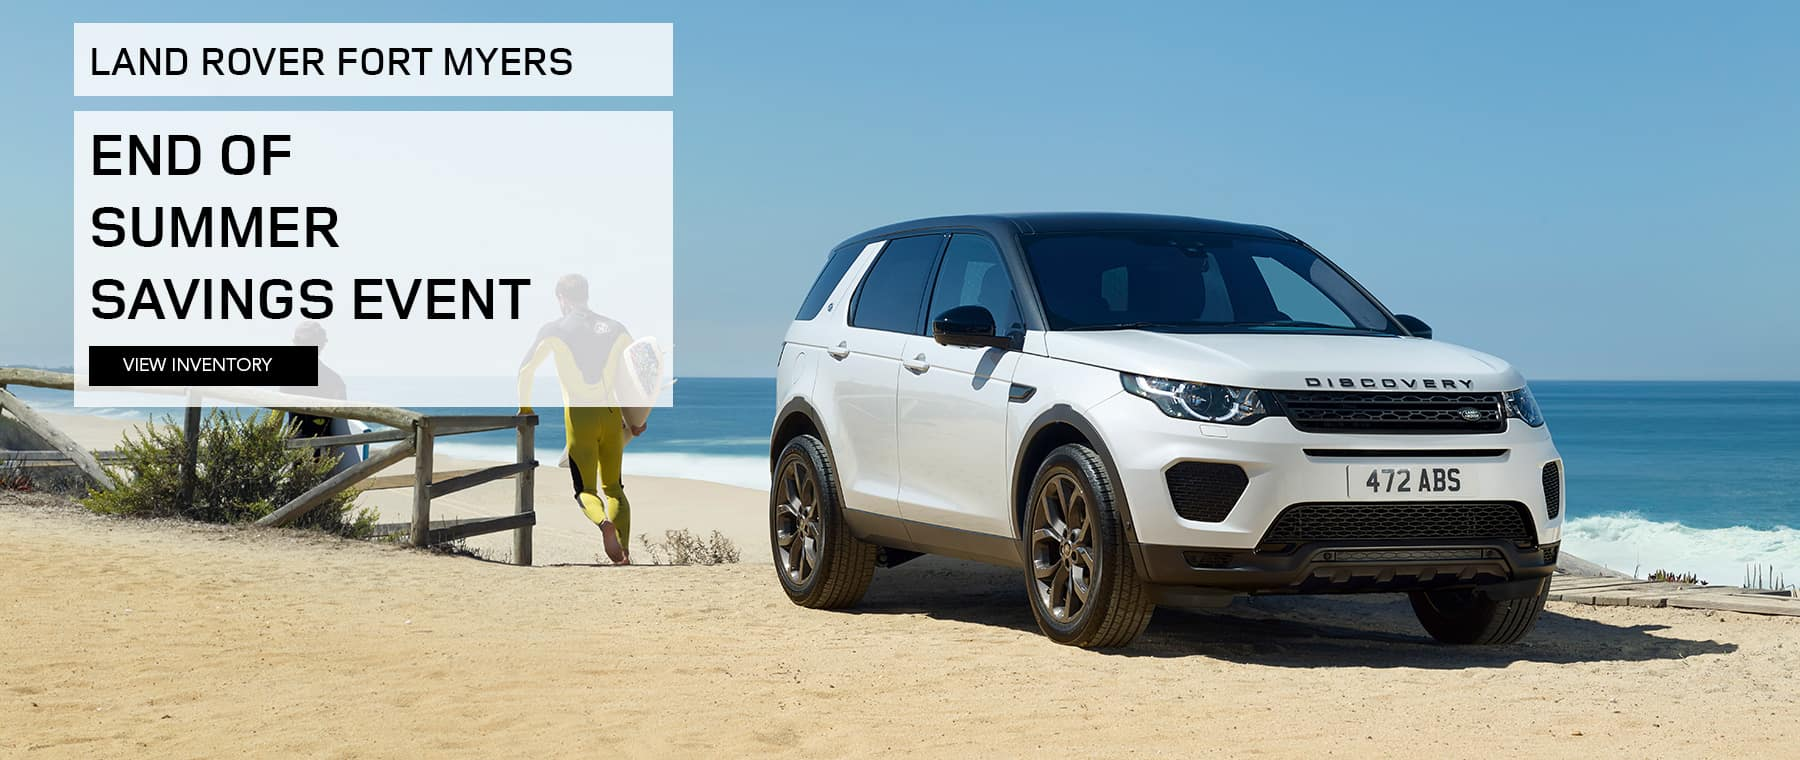 Used Cars Fort Myers >> Land Rover Fort Myers New Used Range Rovers For Sale In